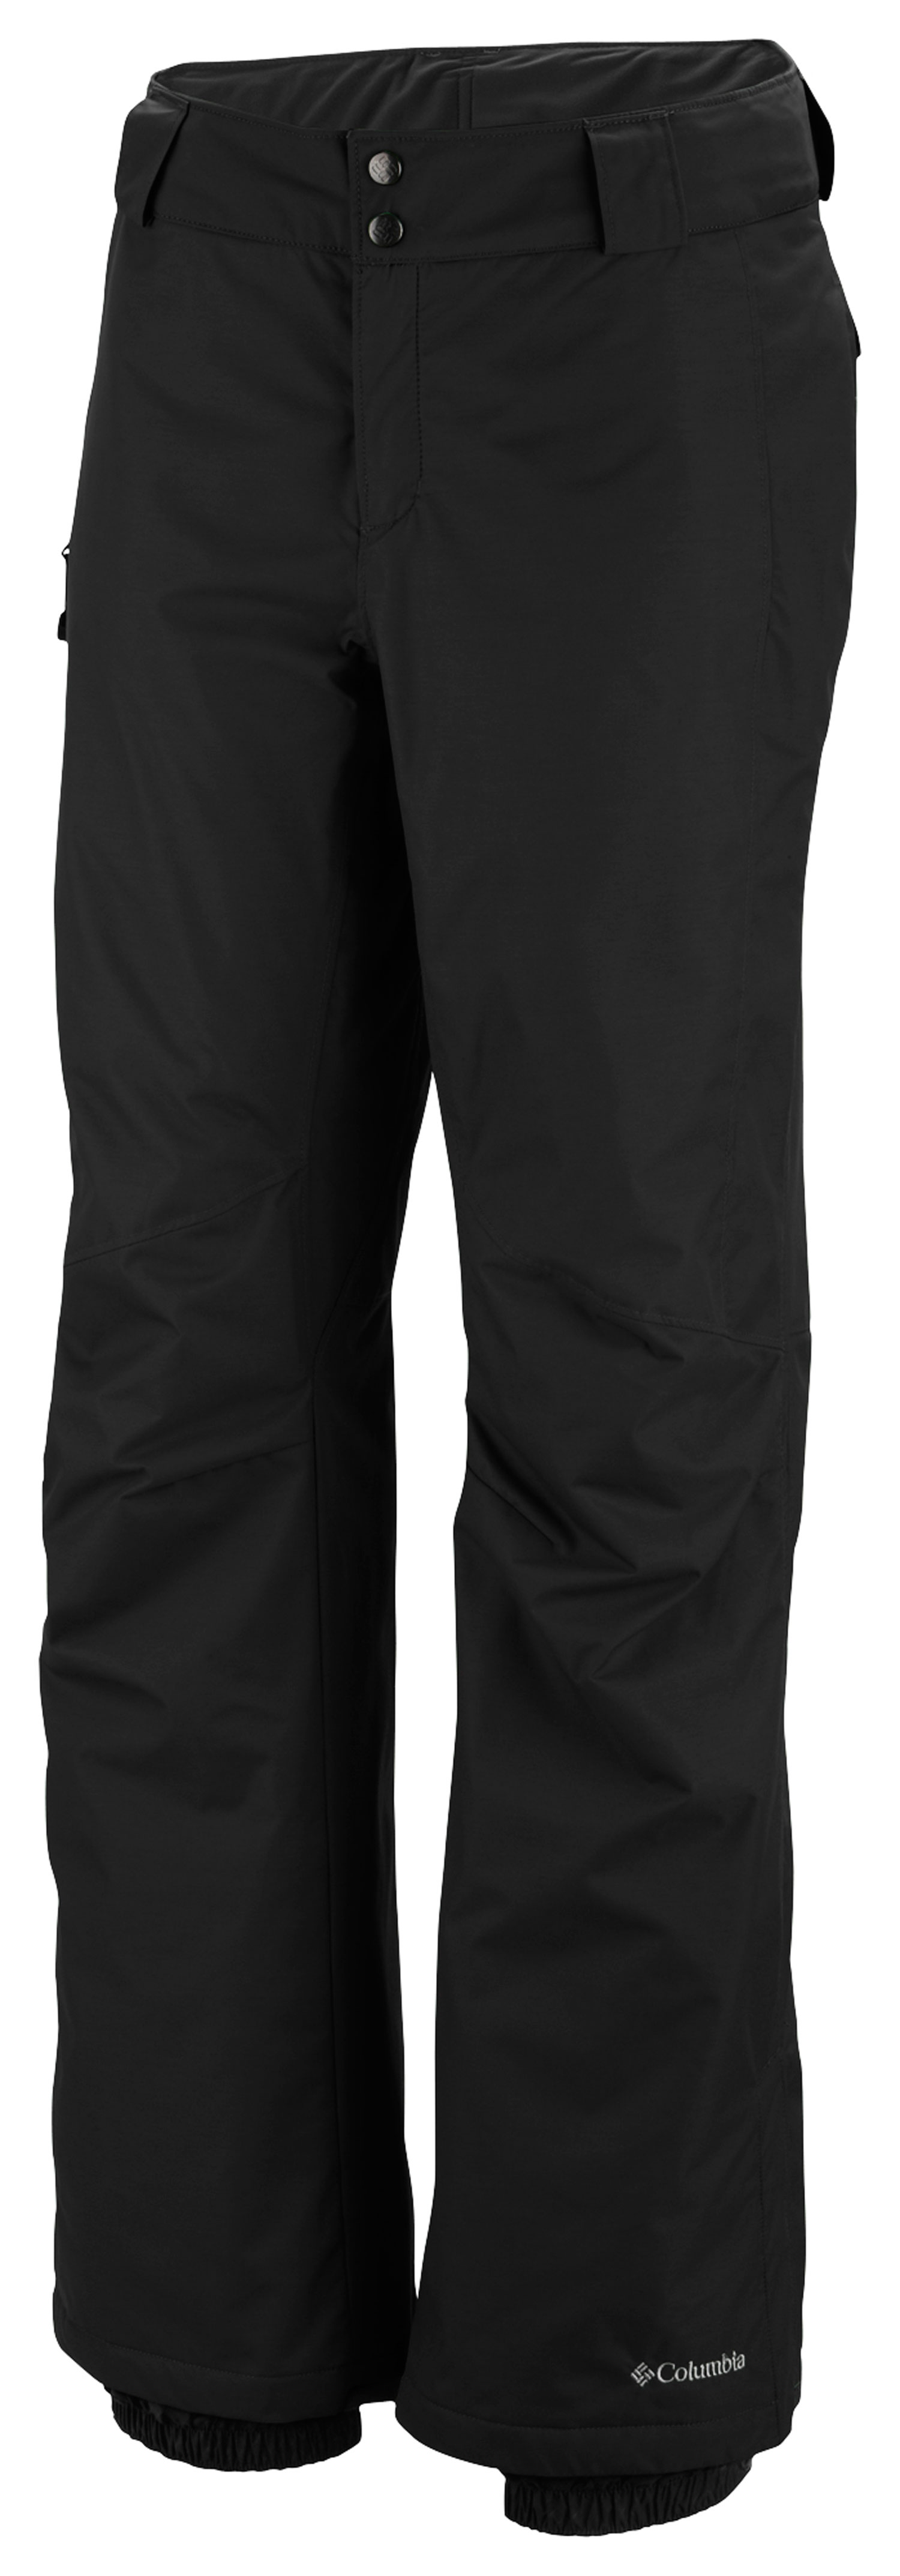 Ski Key Features of the Columbia Bugaboo Ski Pants: FABRIC Shell: 100% nylon Legacy twill. Lining: 100% nylon embossed taffeta. Insulation: 100% polyester Microtemp XF II 60g. FIT Active Omni-Tech™ waterproof/breathable critically seam sealed Adjustable waist Internal, adjustable leg gaiter Reinforced leg hem Lower leg snap gusset Zip-closed pockets - $66.95